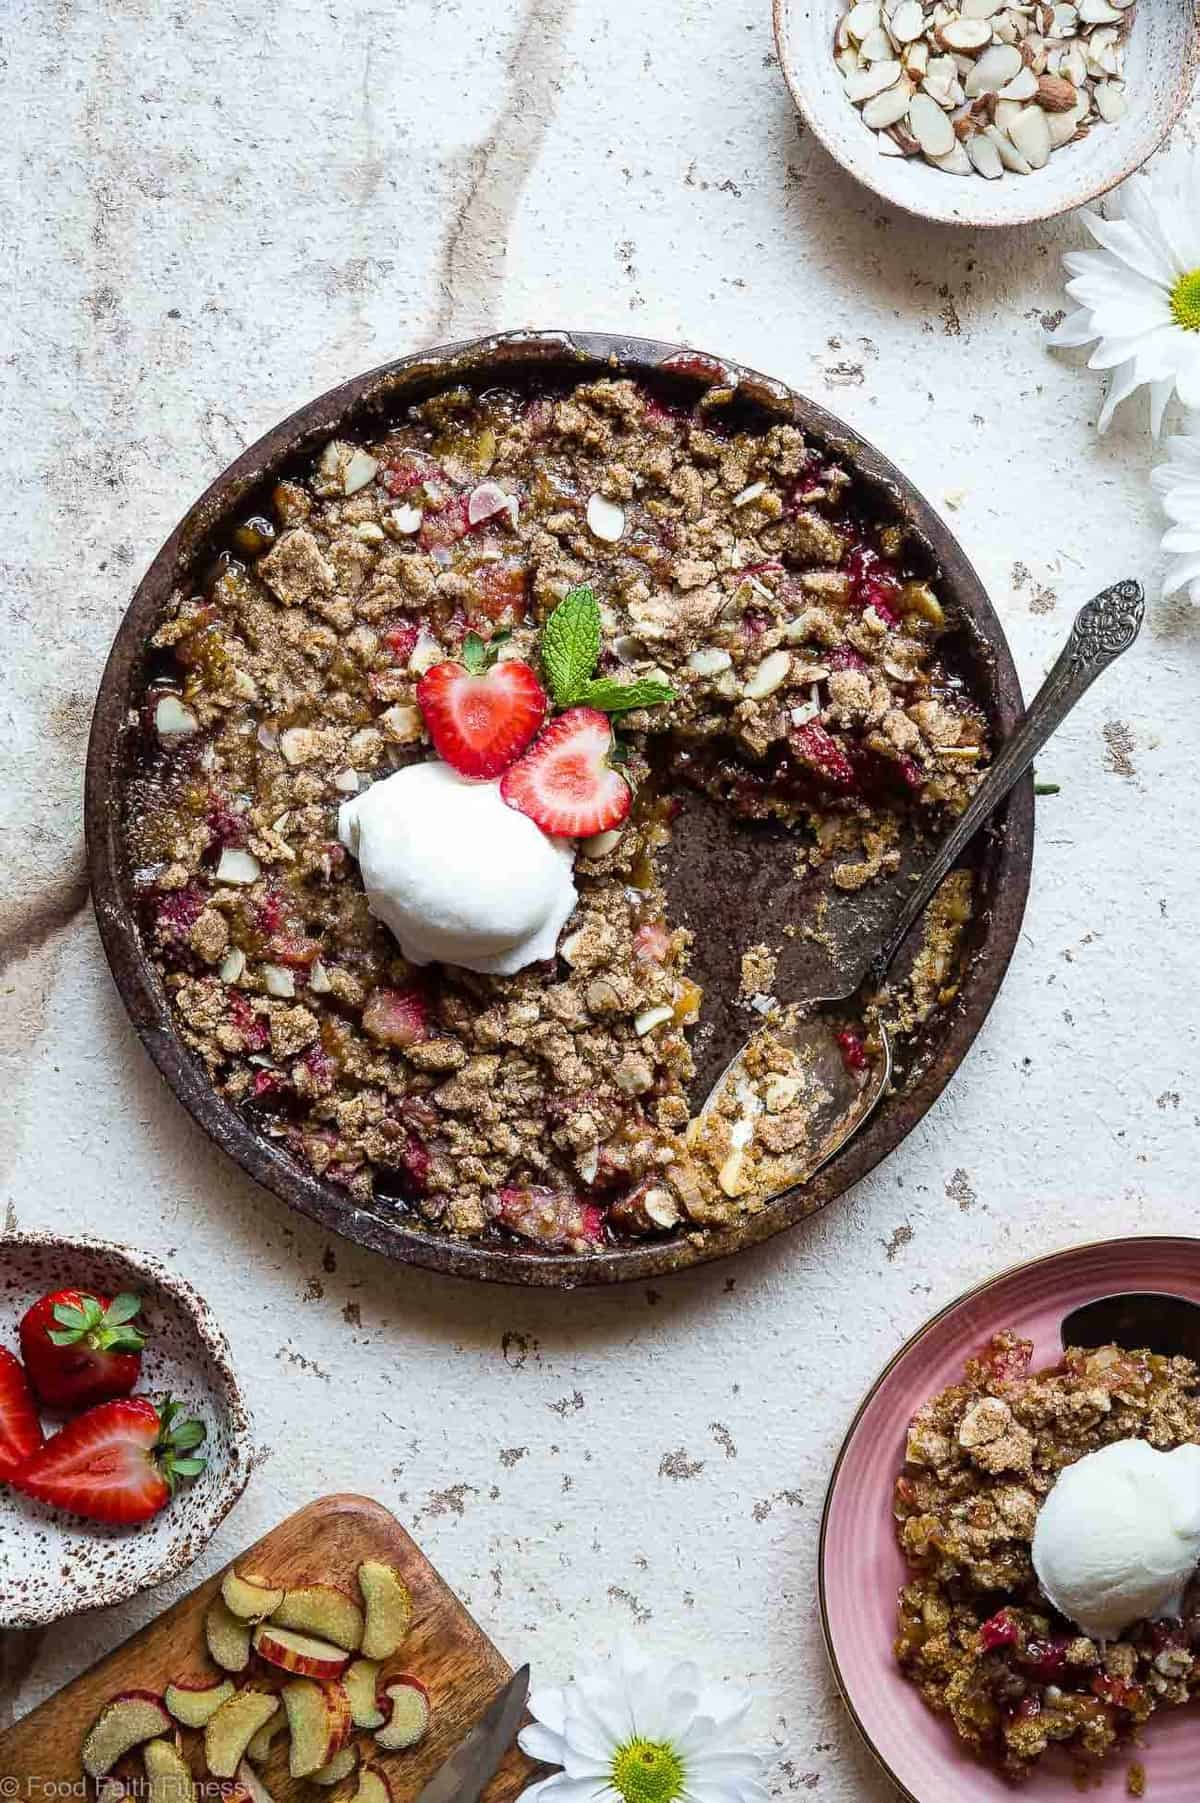 Easy Gluten Free Strawberry Rhubarb Crisp - This healthier Strawberry Rhubarb Crisp is a better for you dessert made with wholesome, simple ingredients! Dairy, gluten, grain free and paleo and vegan friendly too! | #Foodfaithfitness | #Vegan #Paleo #Glutenfree #Healthy #Dessert